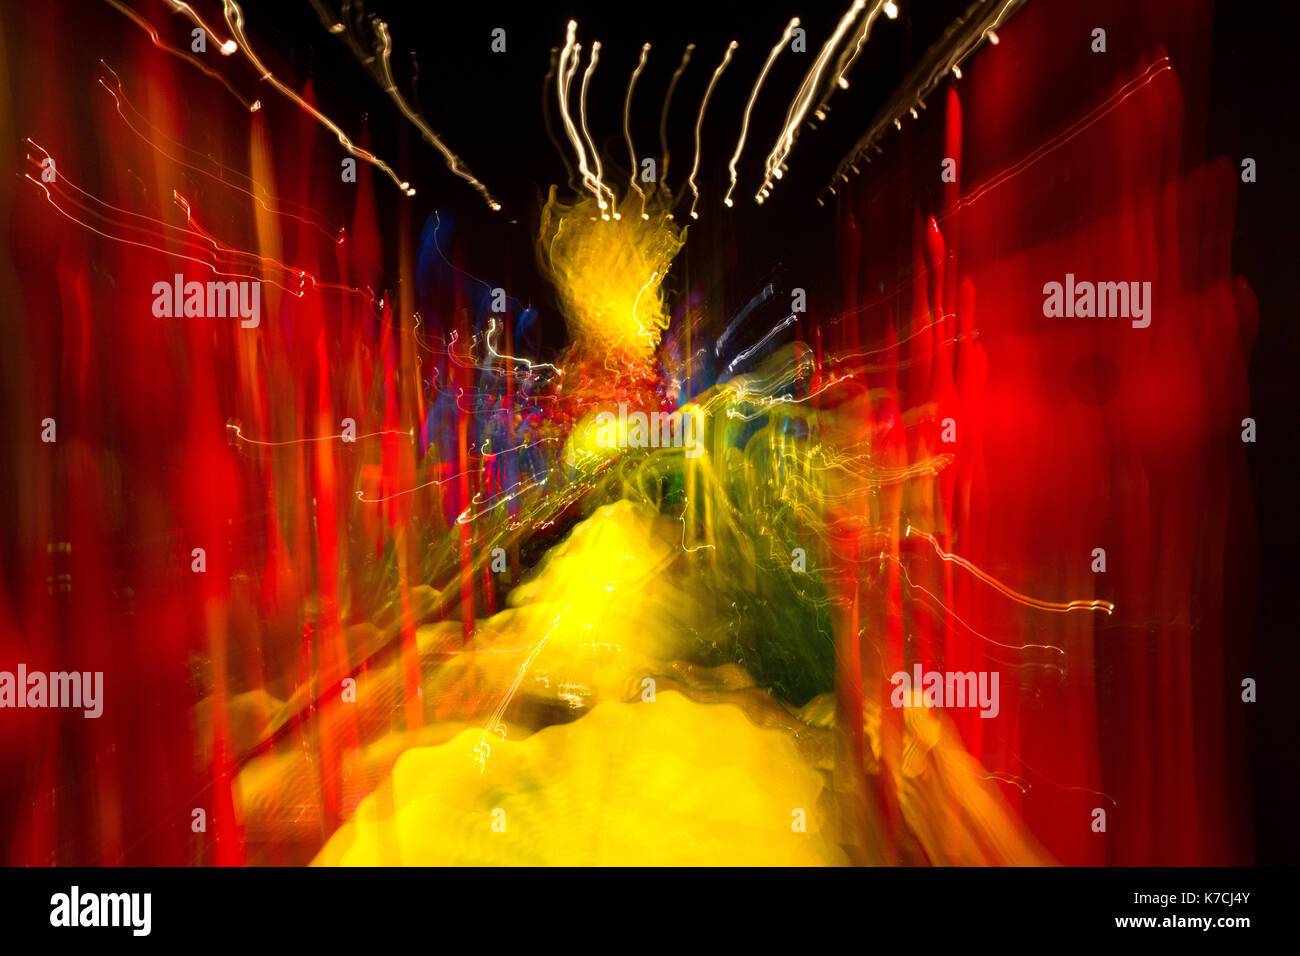 Abstract photo with multiple color lights in motion Stock Photo